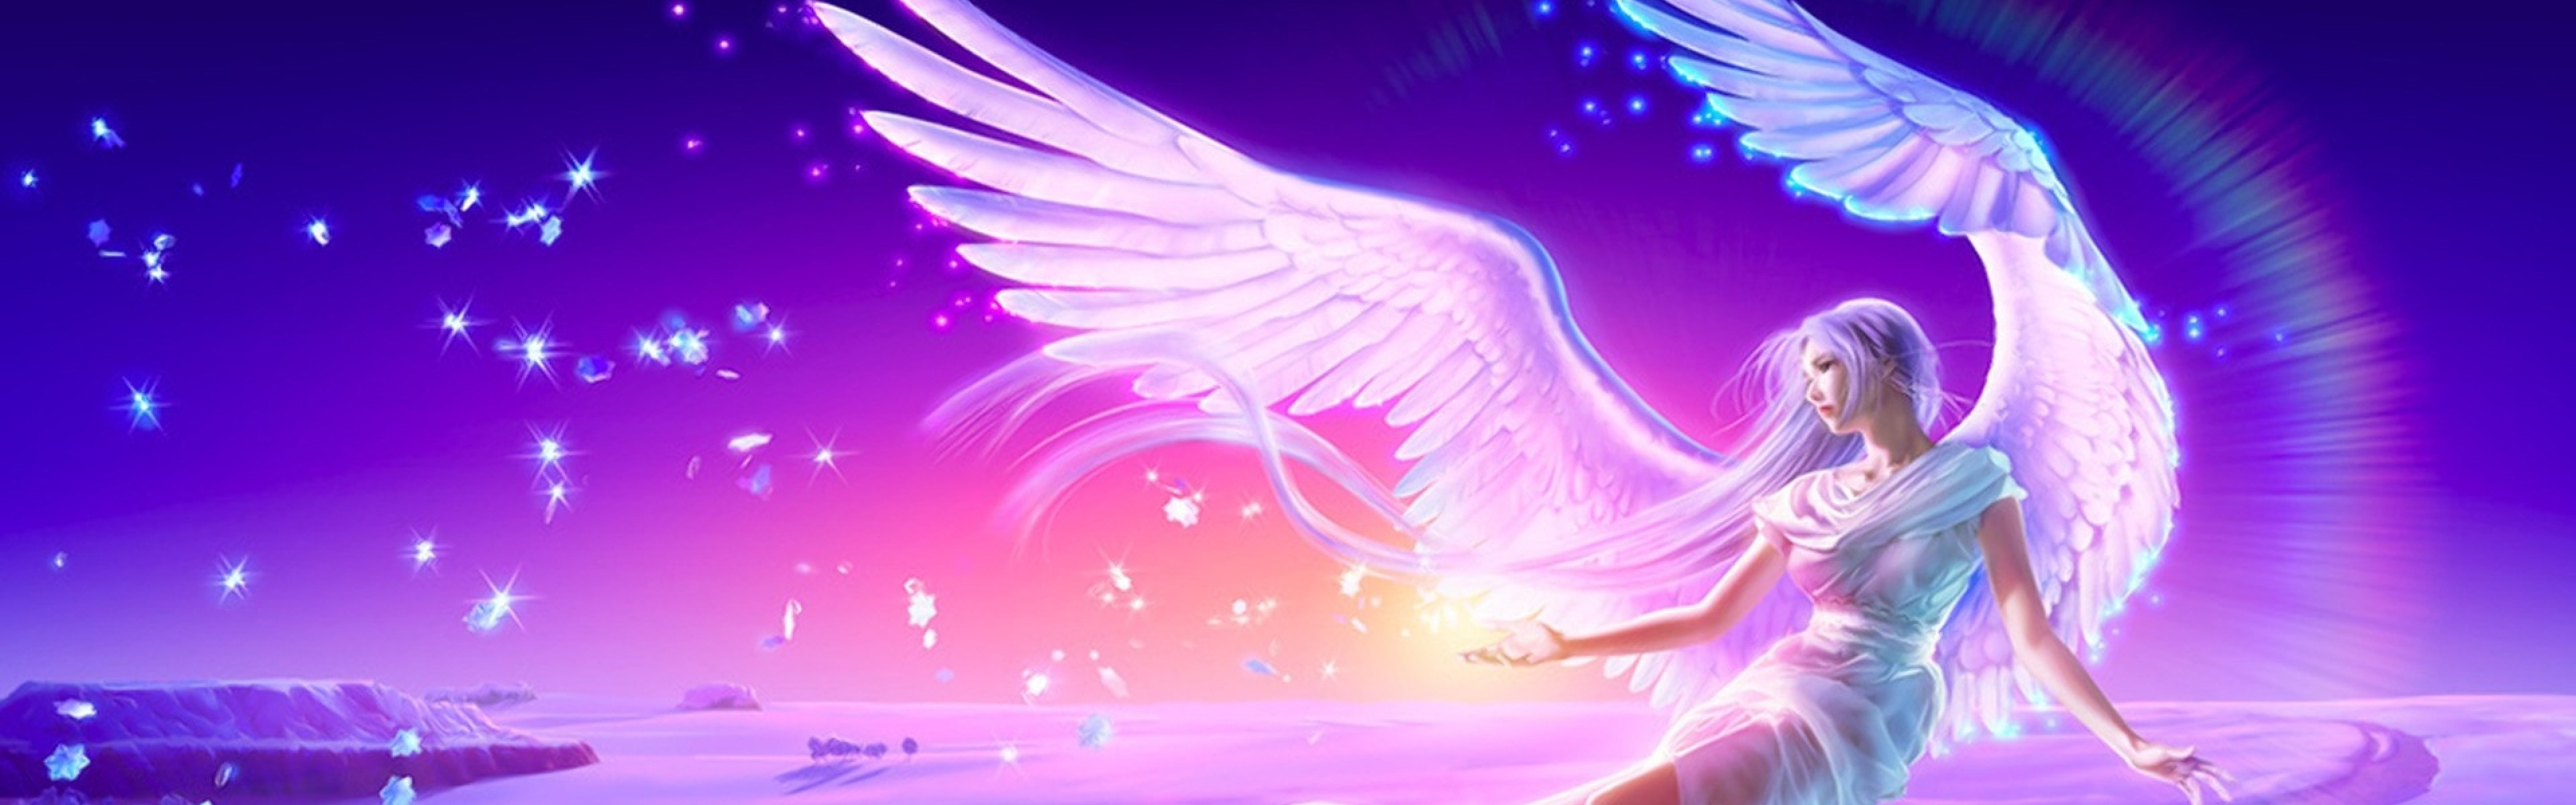 angel wings background  49 images free military clip art banner free military clip art